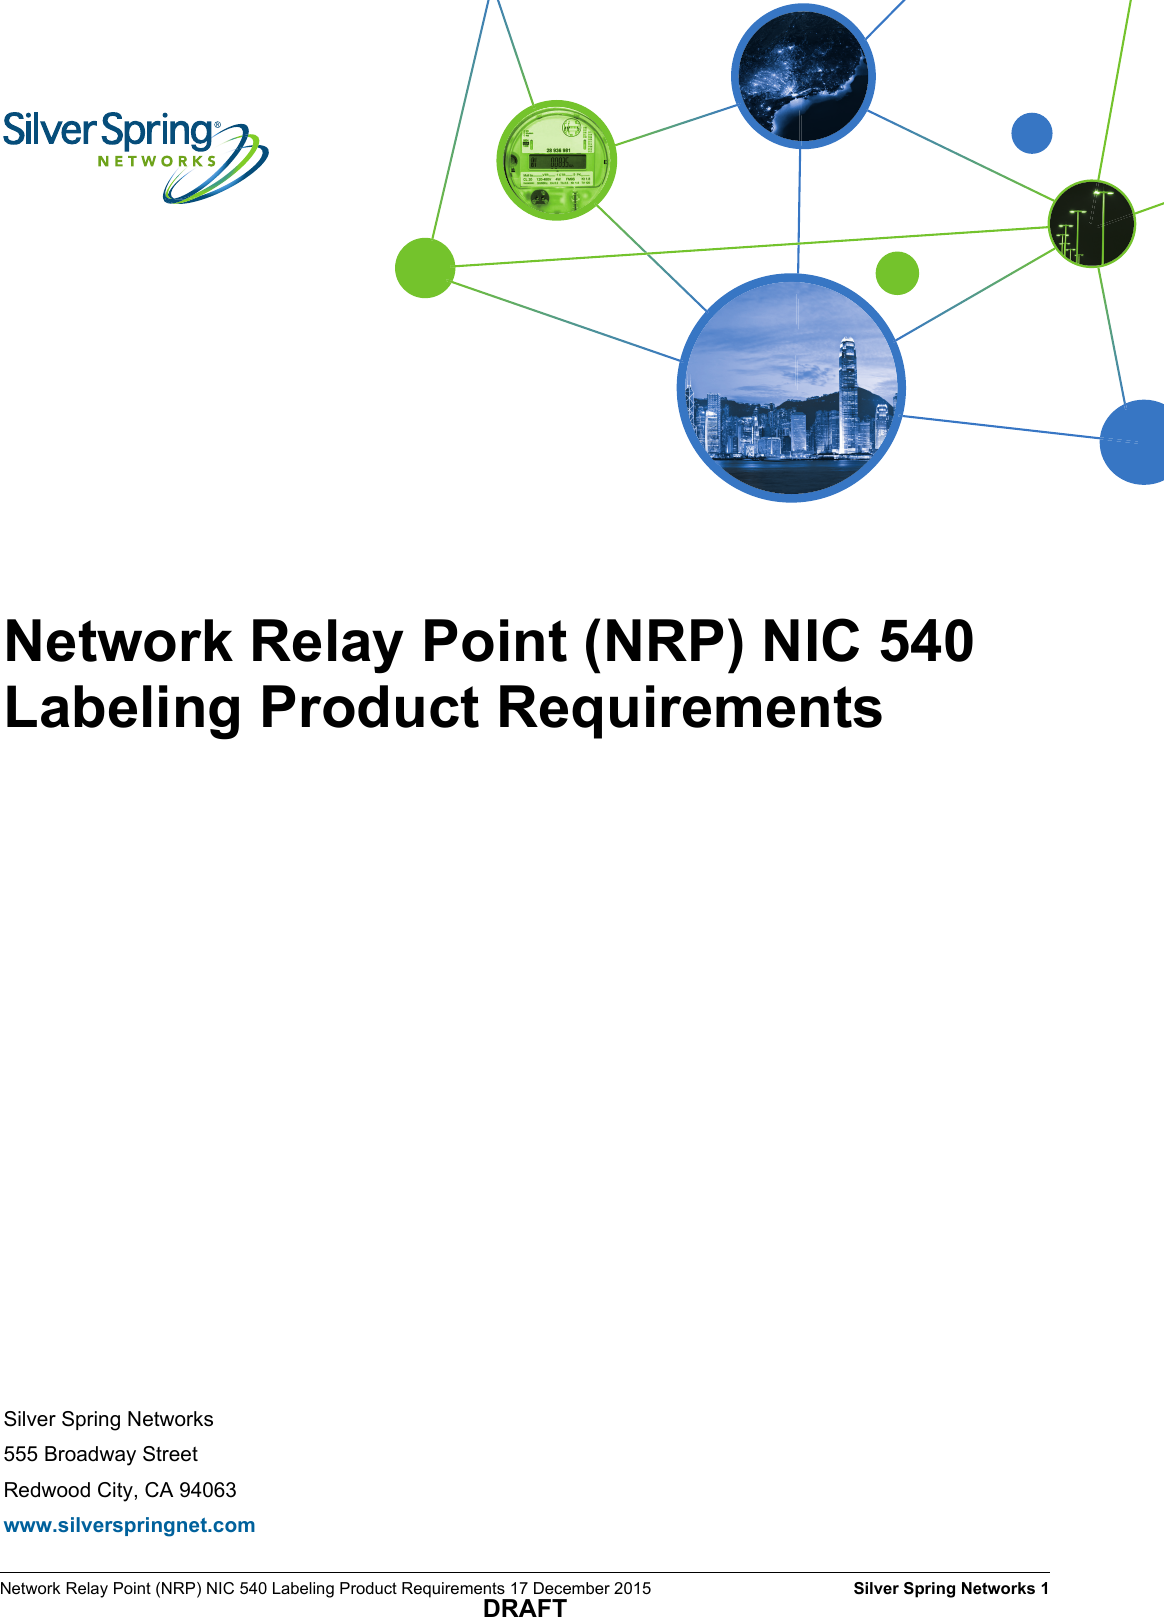 Silver Spring Networks Nic541 Network Relay Point Nrp Nic User Manual Networkdiagramdraft 540 Labeling Product Requirements 17 December 2015